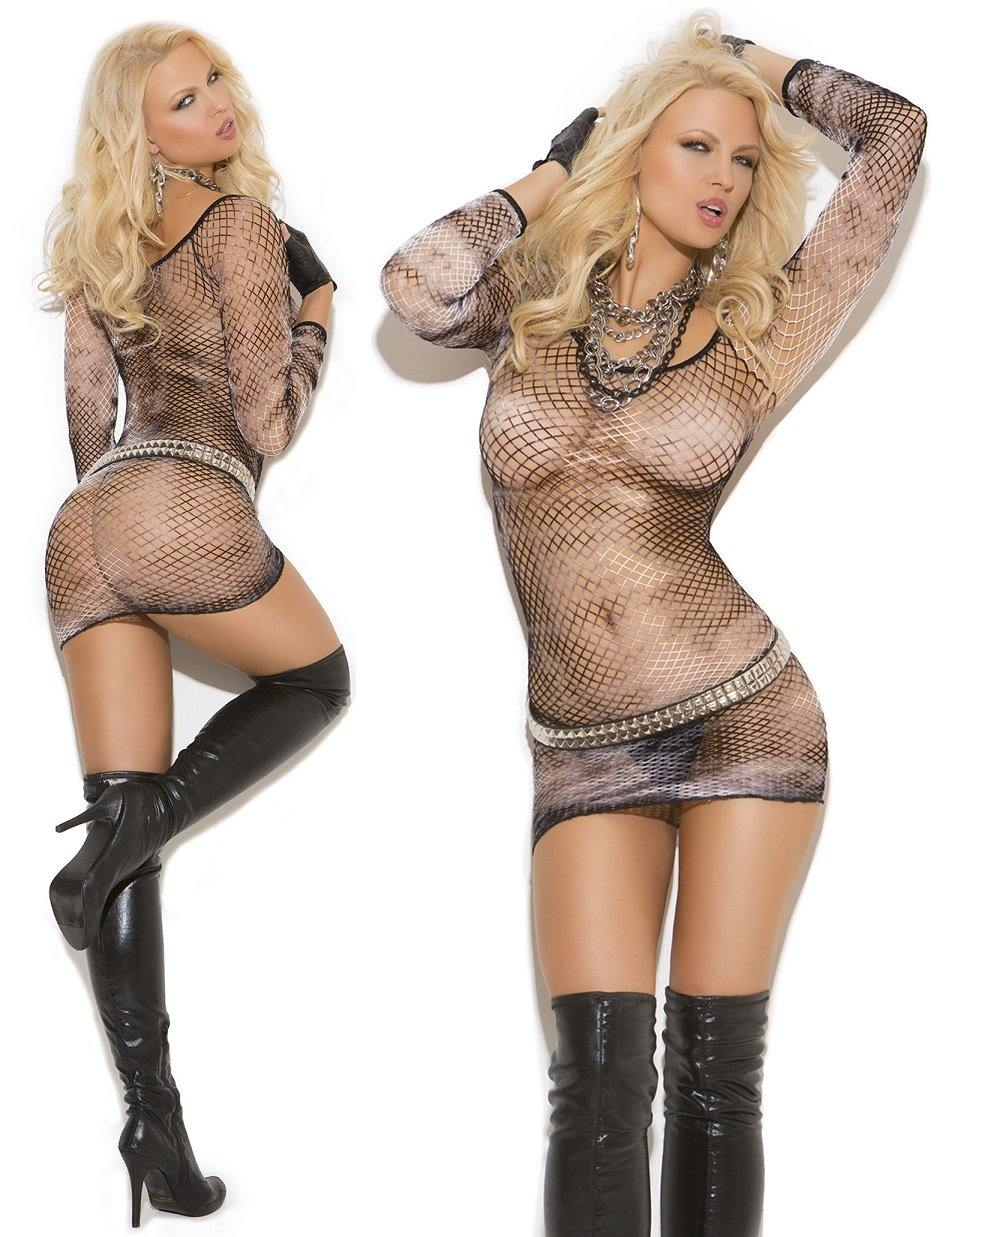 Black/White Tie Dye Diamond Net Long Sleeve Dress - Amore Lingerie